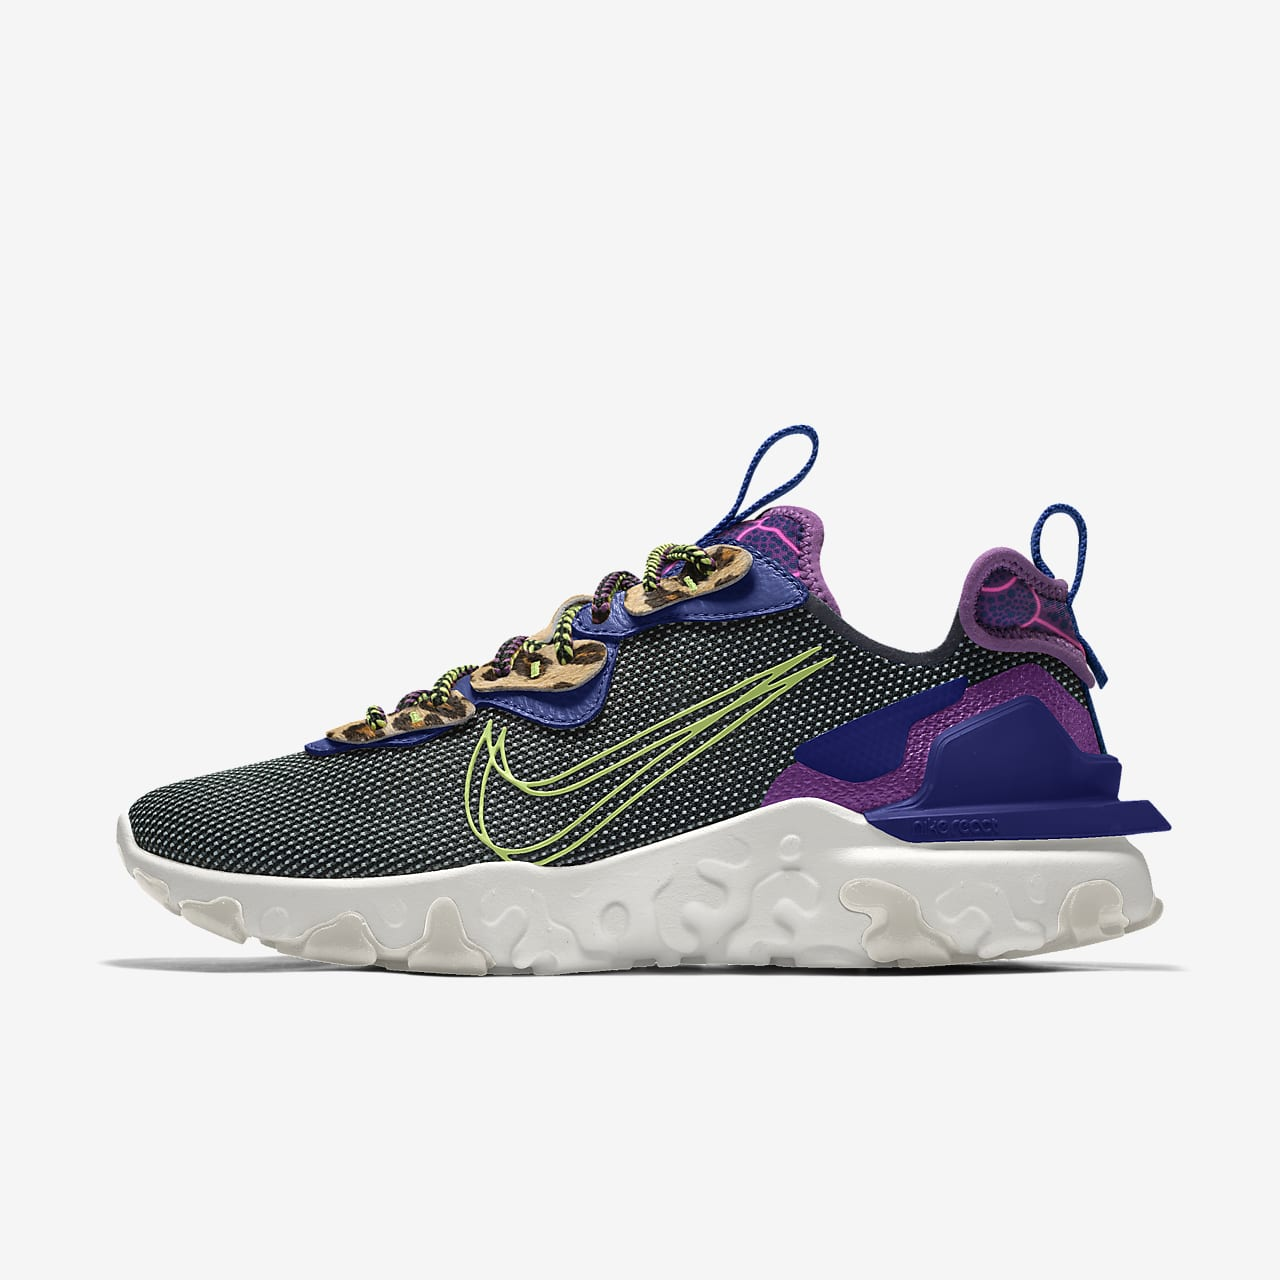 Nike React Vision By You Custom Women's Lifestyle Shoe